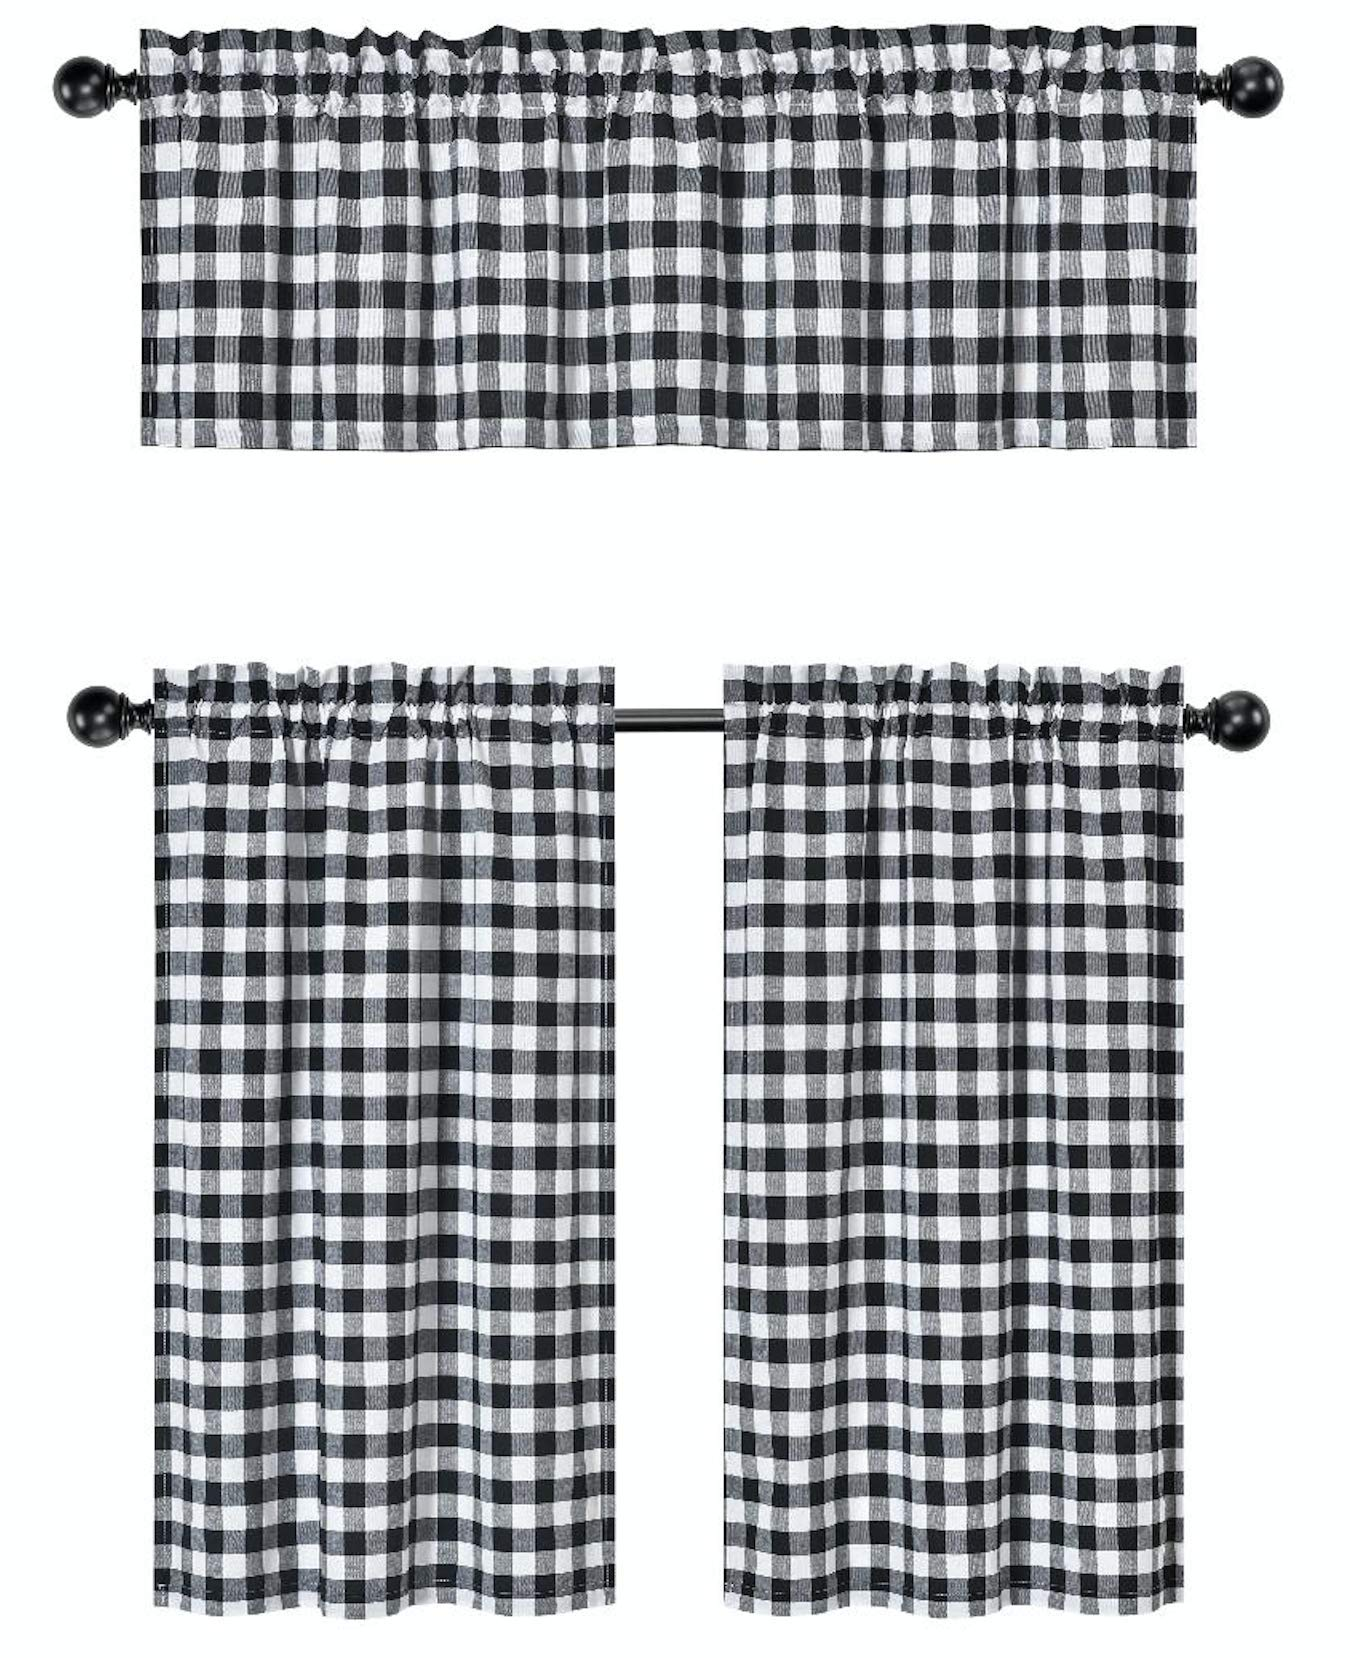 GoodGram 3 Pc. Plaid Country Chic Cotton Blend Kitchen Curtain Tier & Valance Set - Assorted Colors (Black) by GoodGram